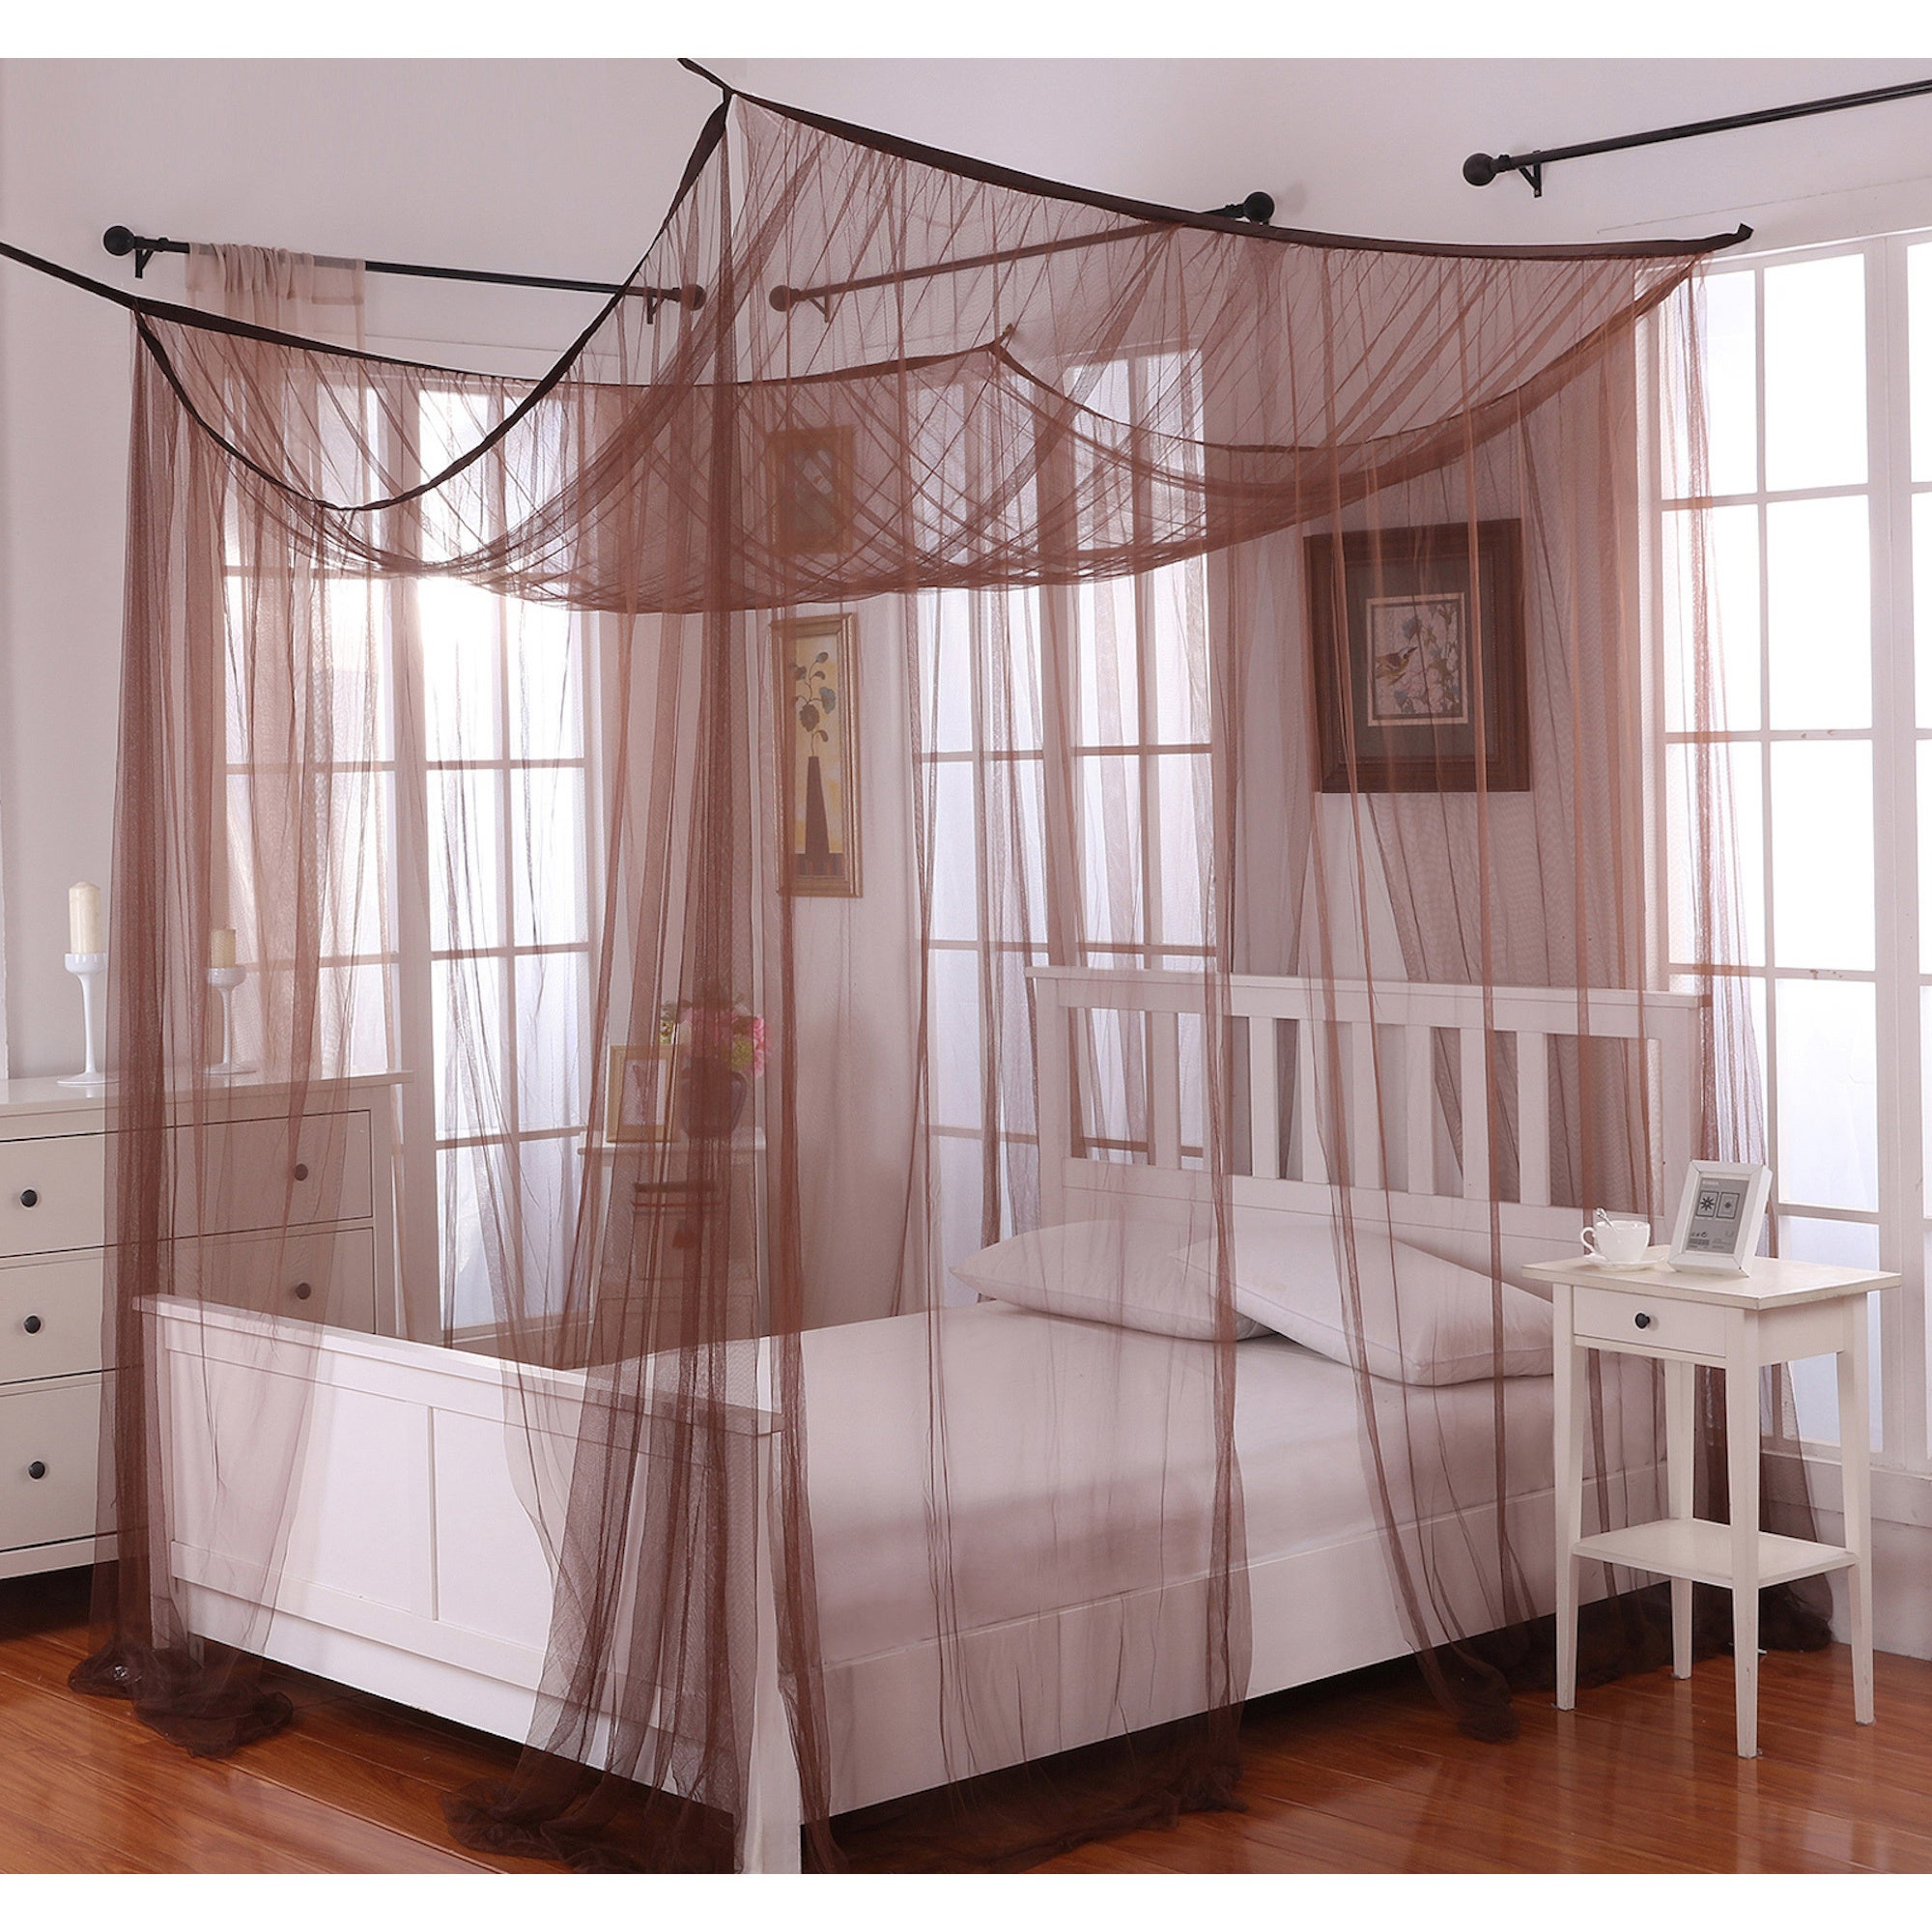 Palace Four-poster Bed Canopy - Free Shipping On Orders Over $45 - Overstock.com - 13936018 & Palace Four-poster Bed Canopy - Free Shipping On Orders Over $45 ...